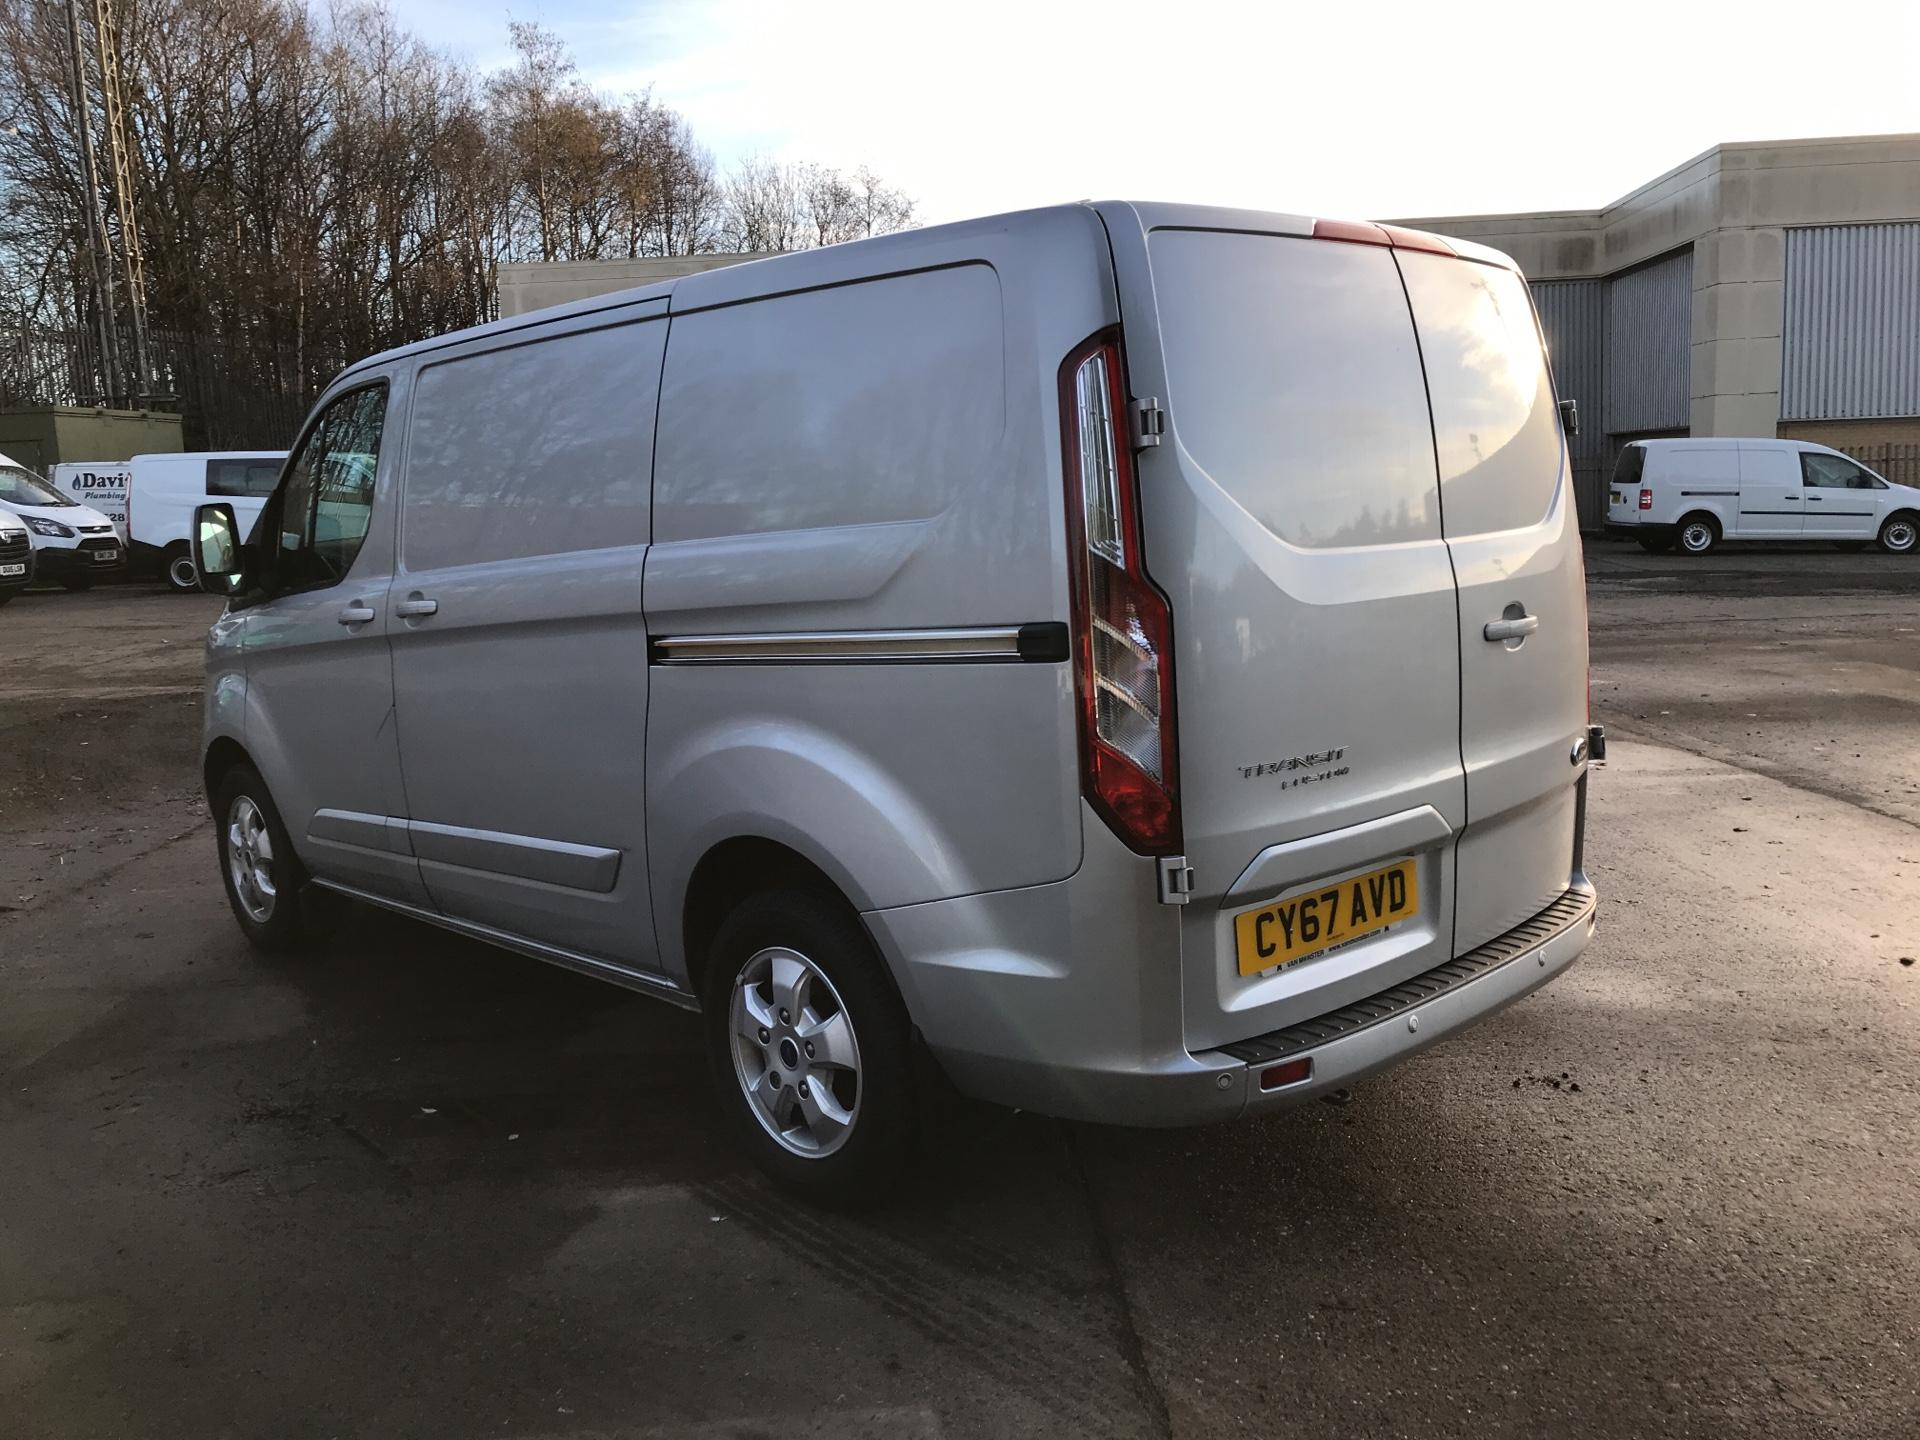 2017 Ford Transit Custom 270 L1 DIESEL FWD 2.0 TDCI 130PS LOW ROOF LIMITED VAN EURO 6 (CY67AVD) Image 5